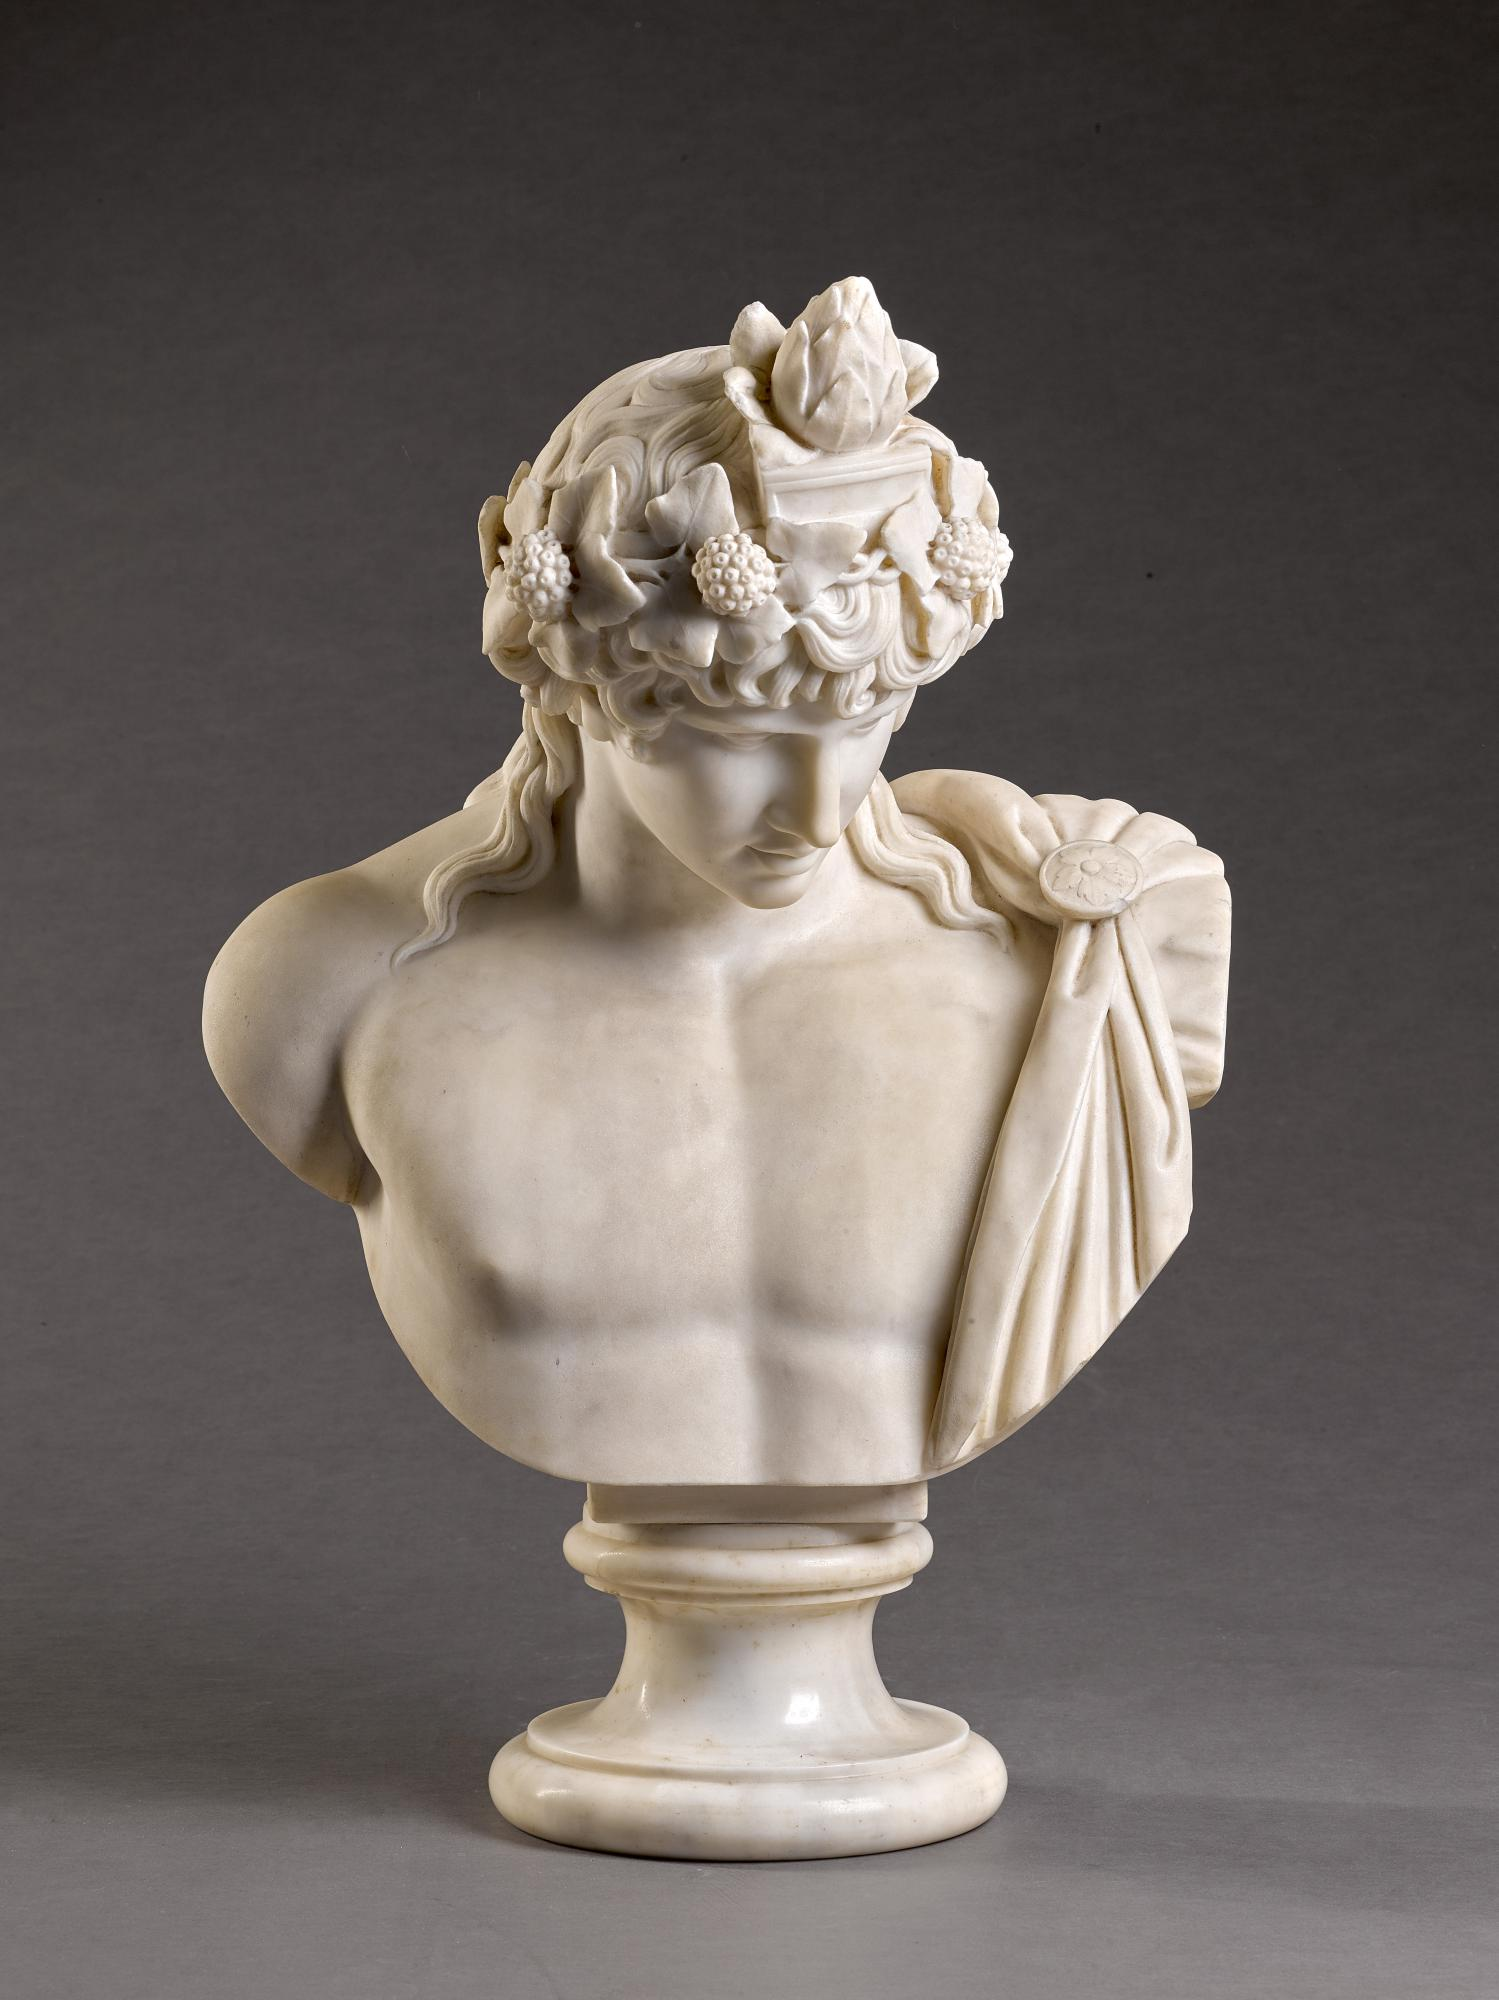 ITALIAN, 19TH CENTURY, AFTER THE ANTIQUE | BUST OF ANTINOUS